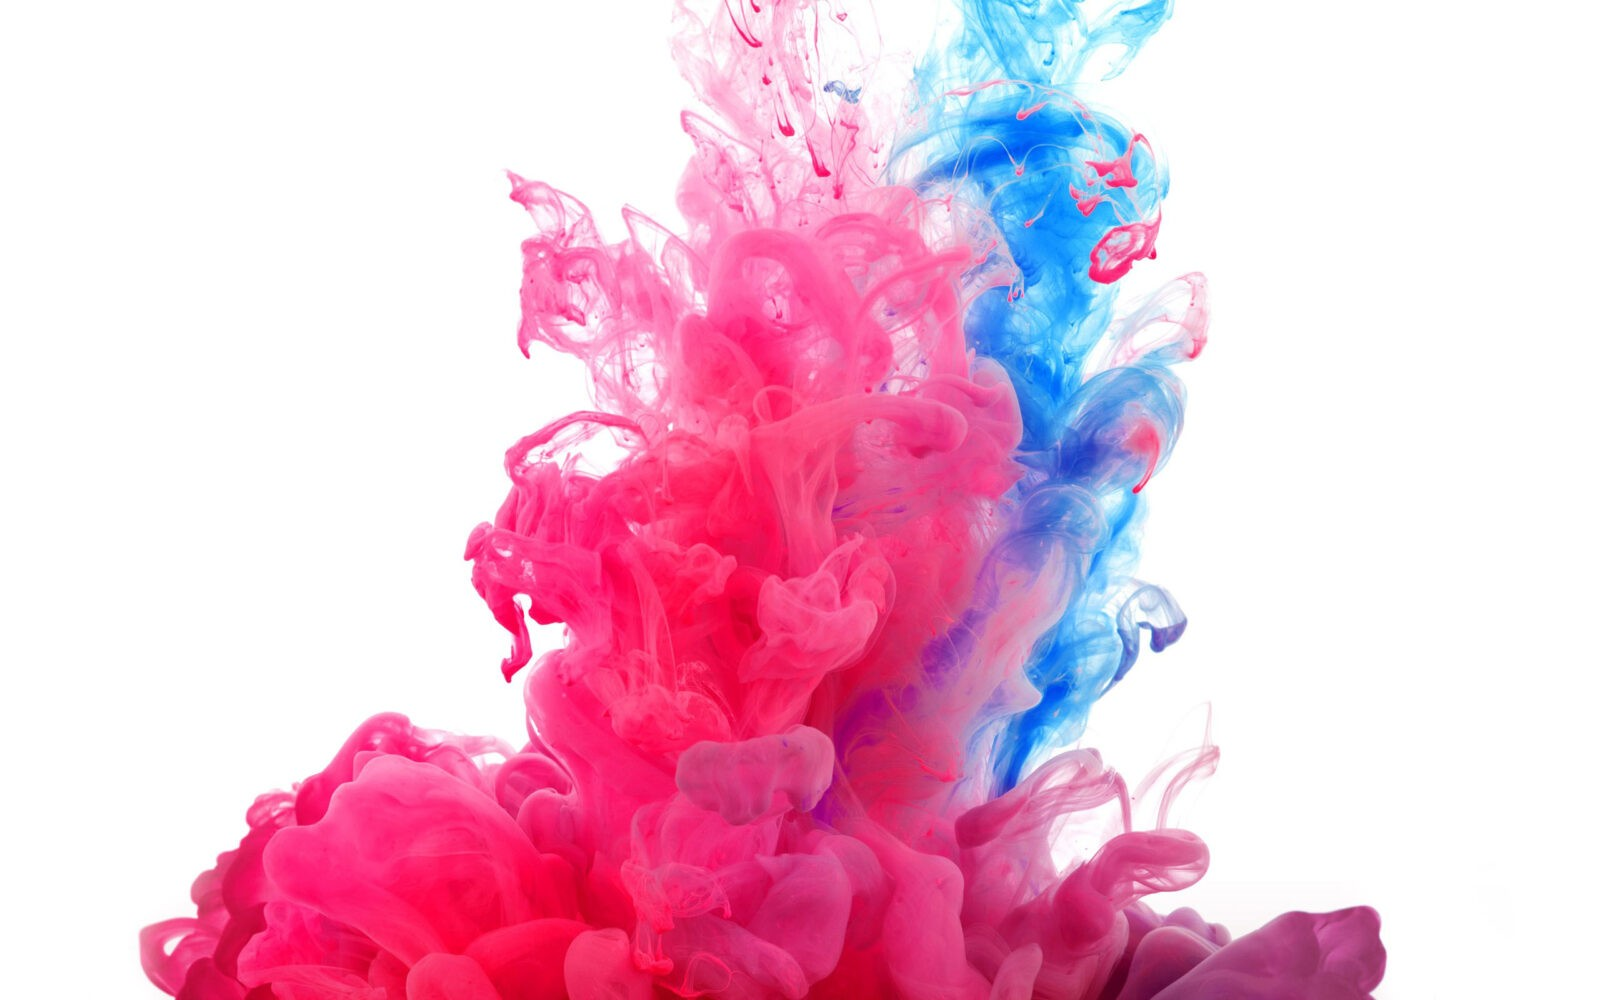 Pink and blue smoke abstract wallpaper